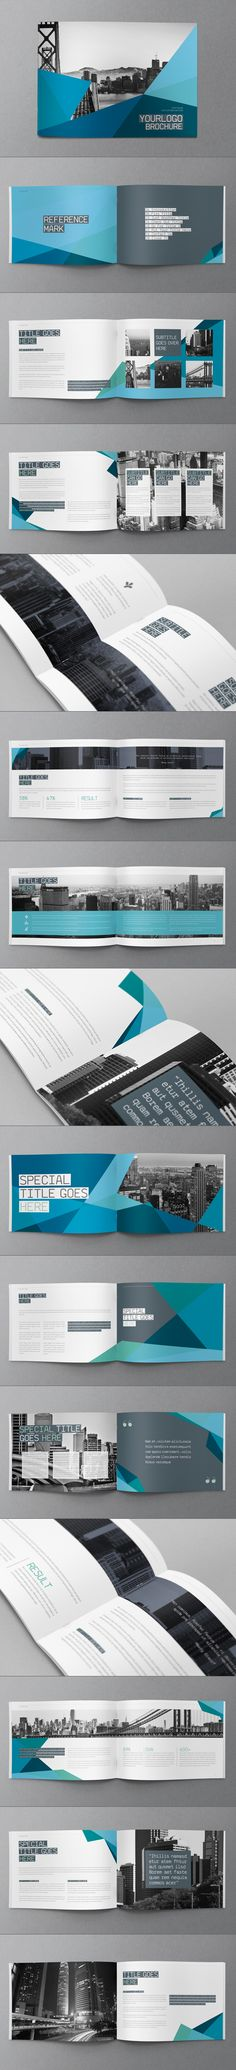 Buy Blue Modern Brochure by AbraDesign on GraphicRiver. BLUE MODERN BROCHURE This brochure is an ideal way to showcase your travel business in an original way. Design Brochure, Booklet Design, Brochure Layout, Graphic Design Layouts, Graphic Design Inspiration, Layout Design, Creative Brochure, Mise En Page Portfolio, Portfolio Design